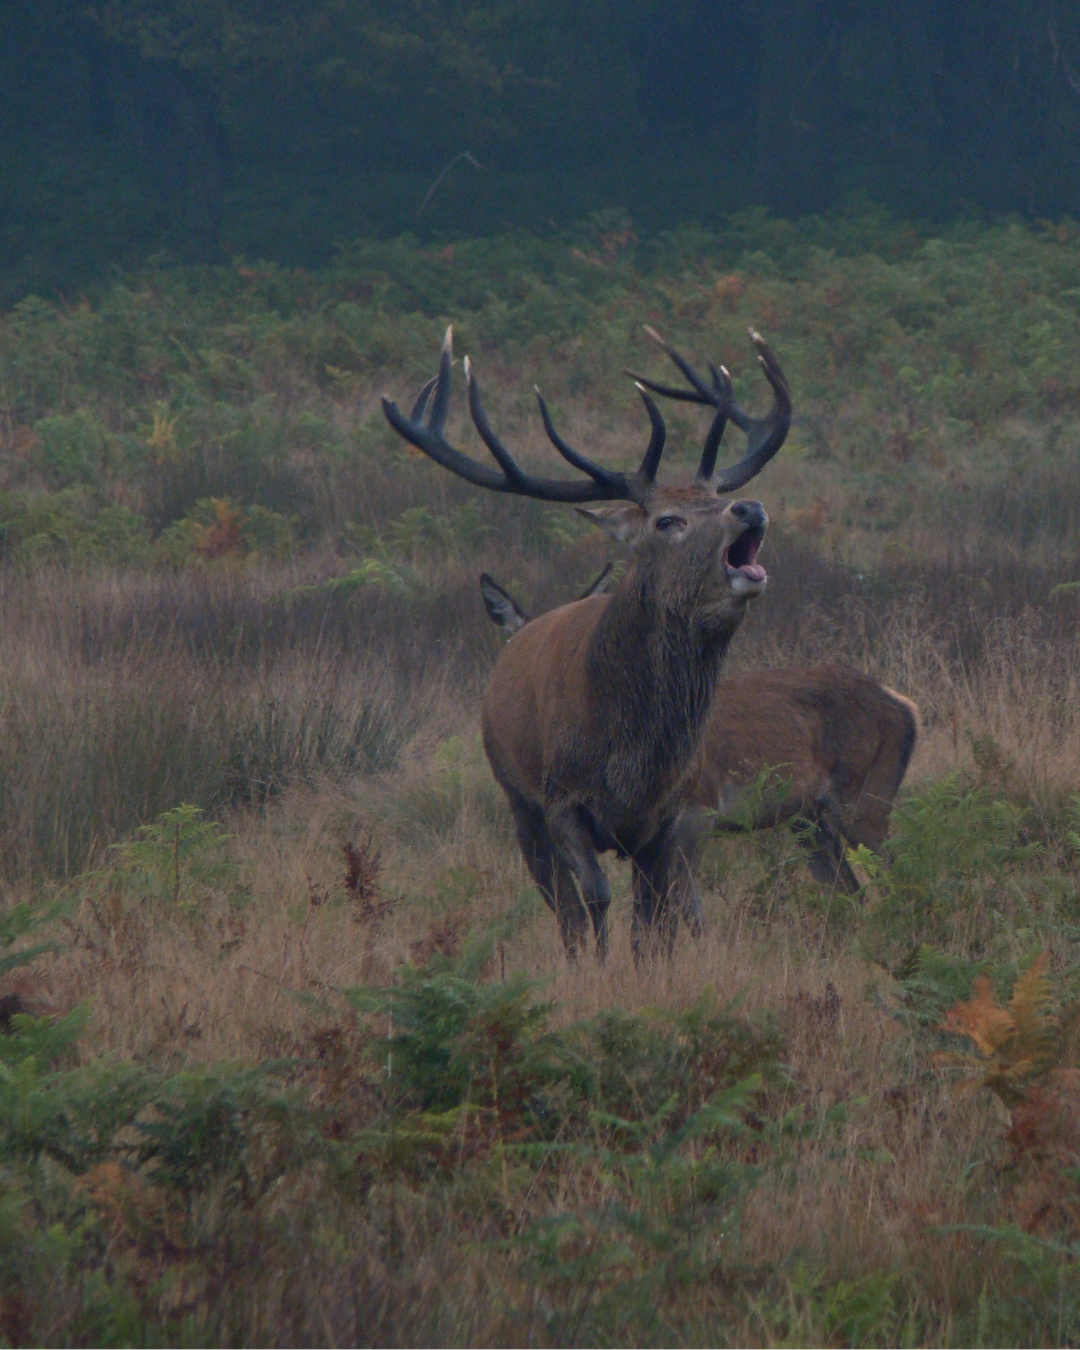 A red deer stag and a red deer hind in Richmond Park, London, 3 October 2015